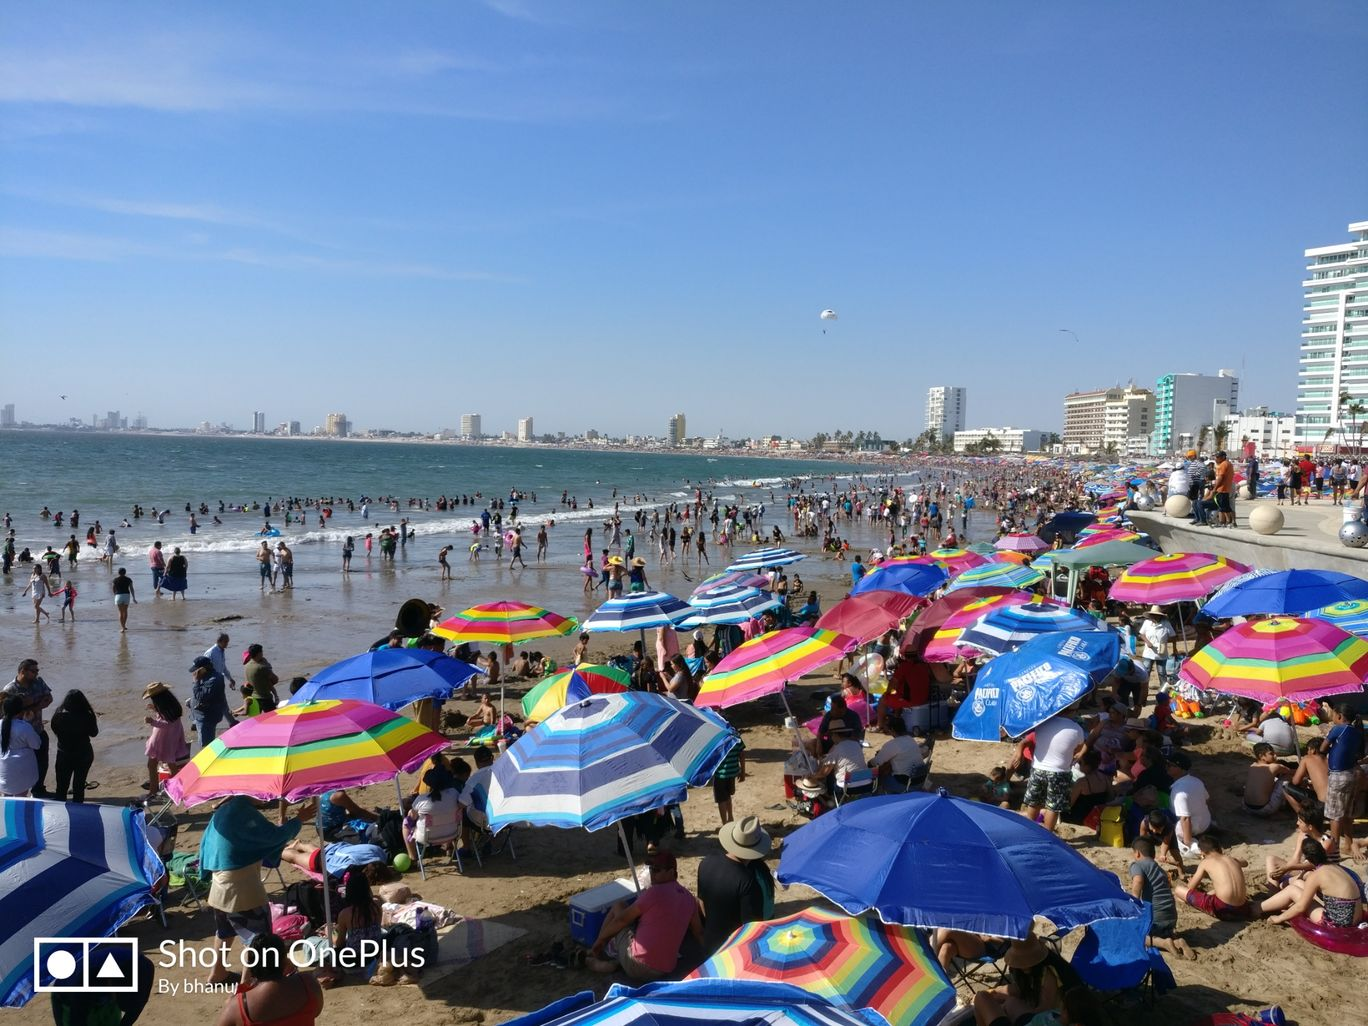 Photo of Mazatlan By bhanu aswal